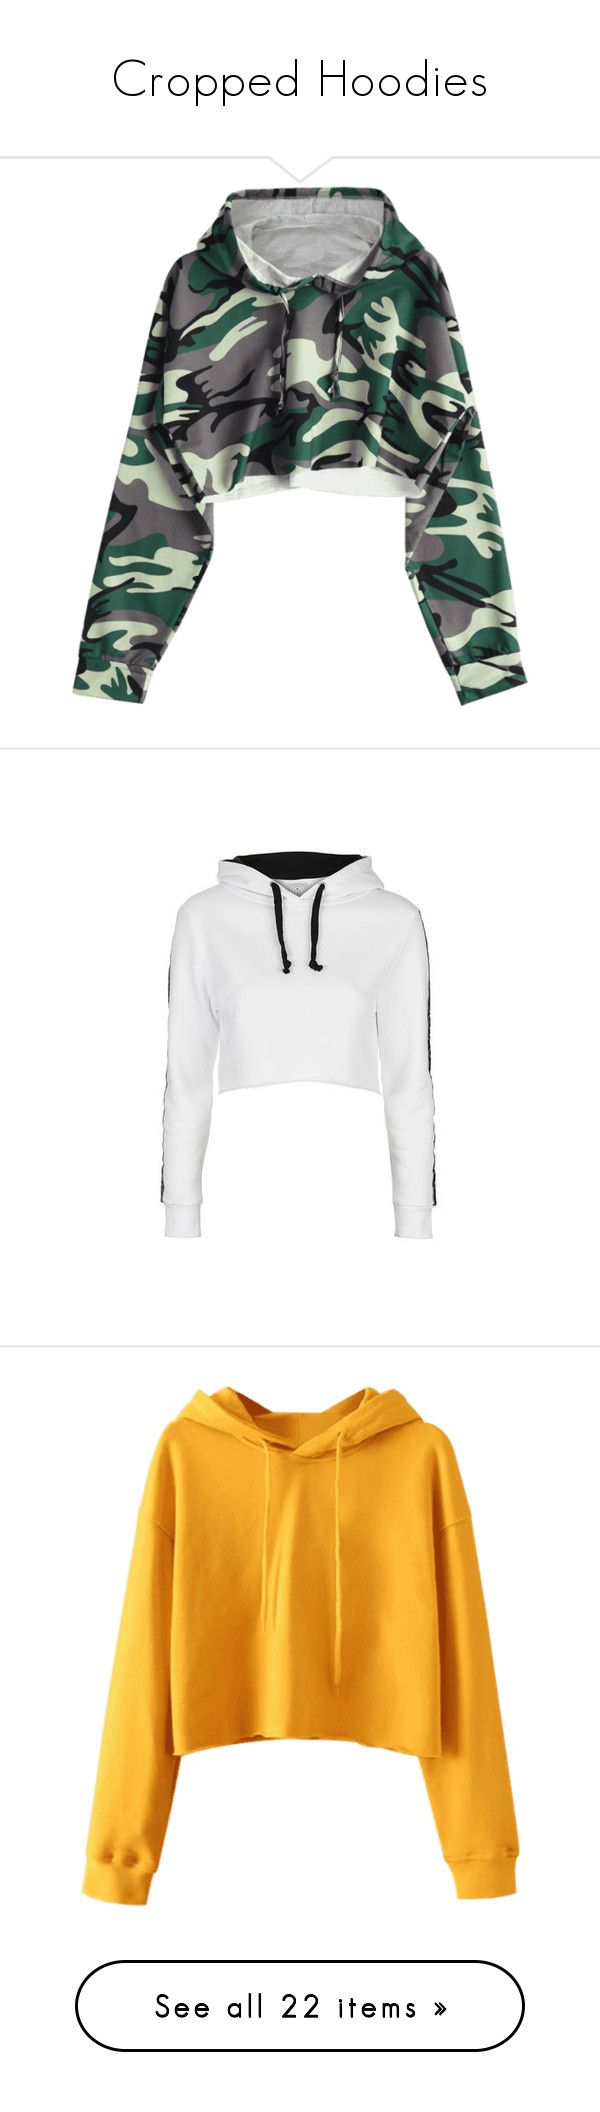 """""""Cropped Hoodies"""" by miniboogie ❤ liked on Polyvore featuring tops, hoodies, hoodie crop top, camo cropped hoodie, green crop top, green hoodies, cropped hoodies, jackets, shirts and sweaters"""